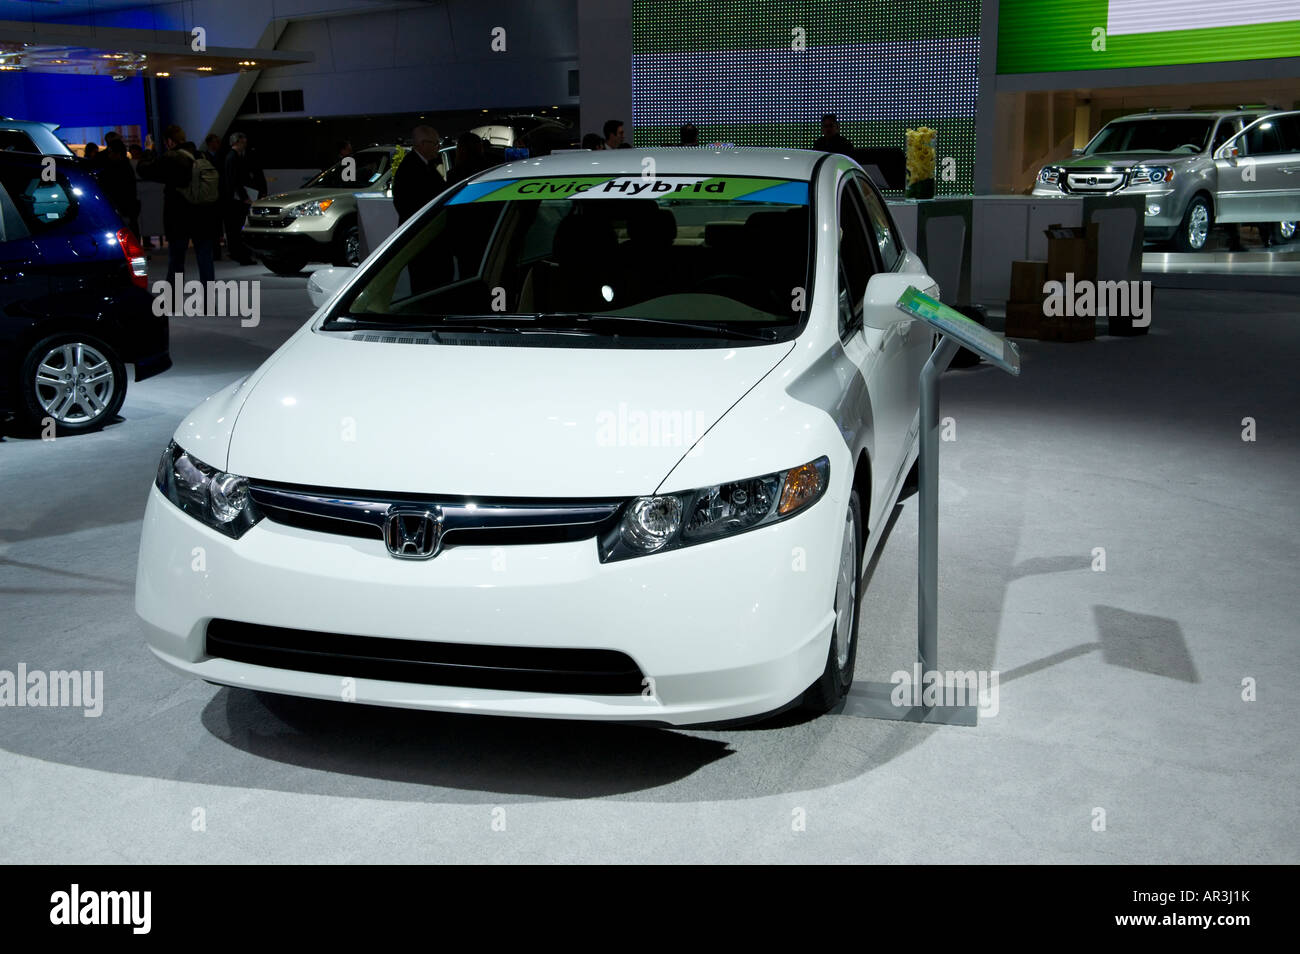 Honda Civic Hybrid Car At The 2008 North American International Auto Show In Detroit Michigan USA